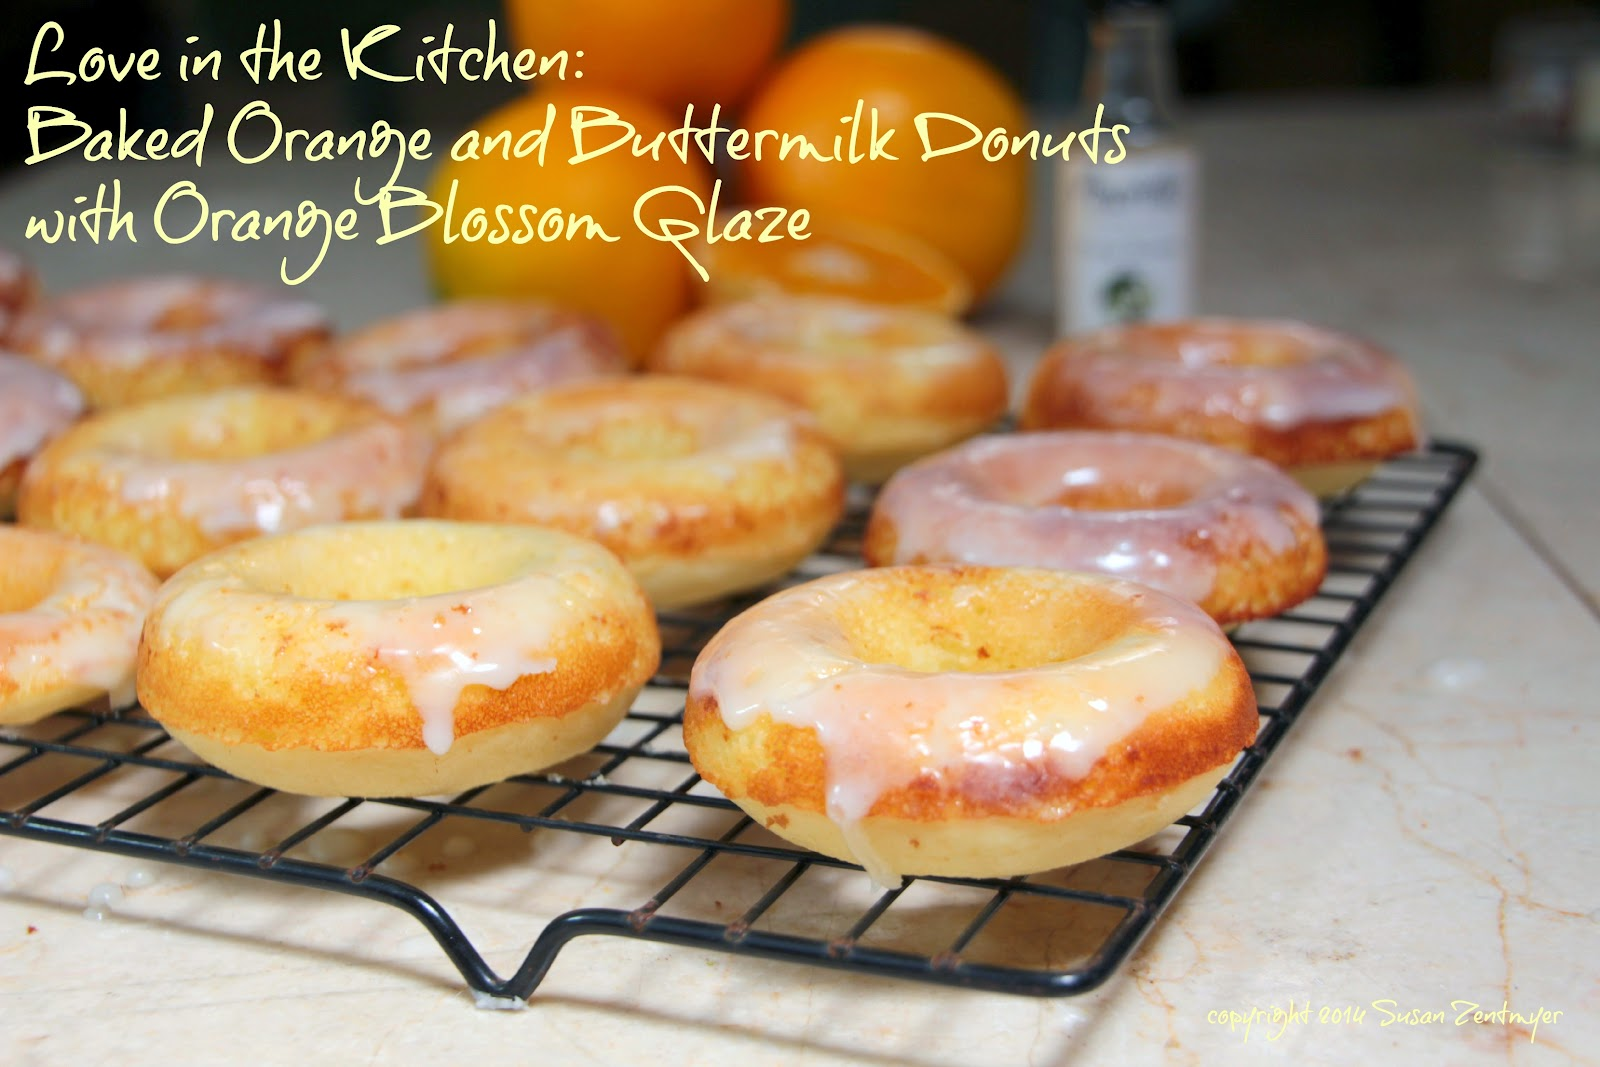 baked orange and buttermilk donuts with orange blossom glaze